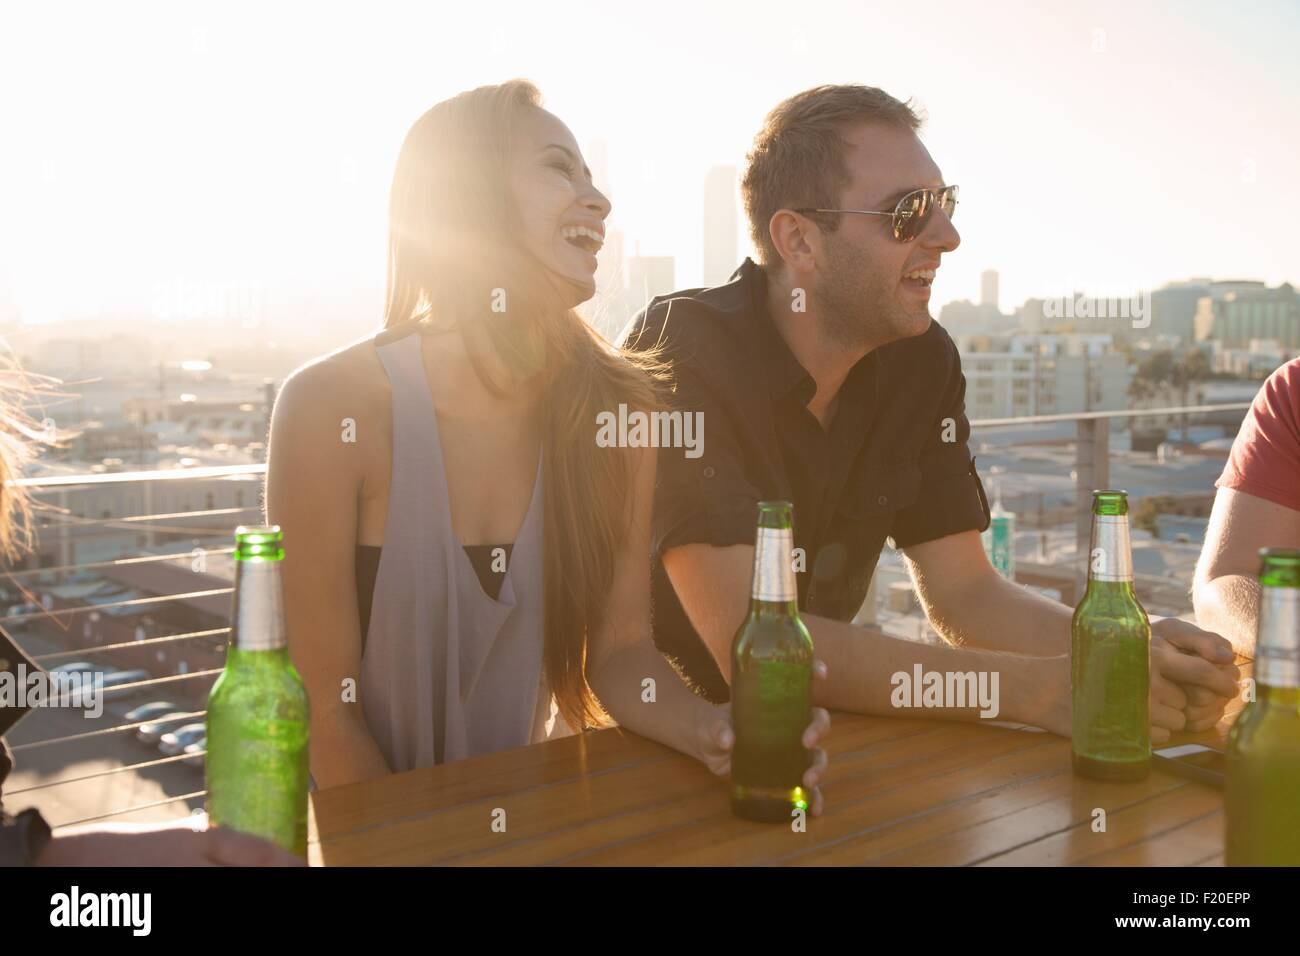 Two adult friends drinking beer at rooftop bar table with Los Angeles skyline, USA - Stock Image